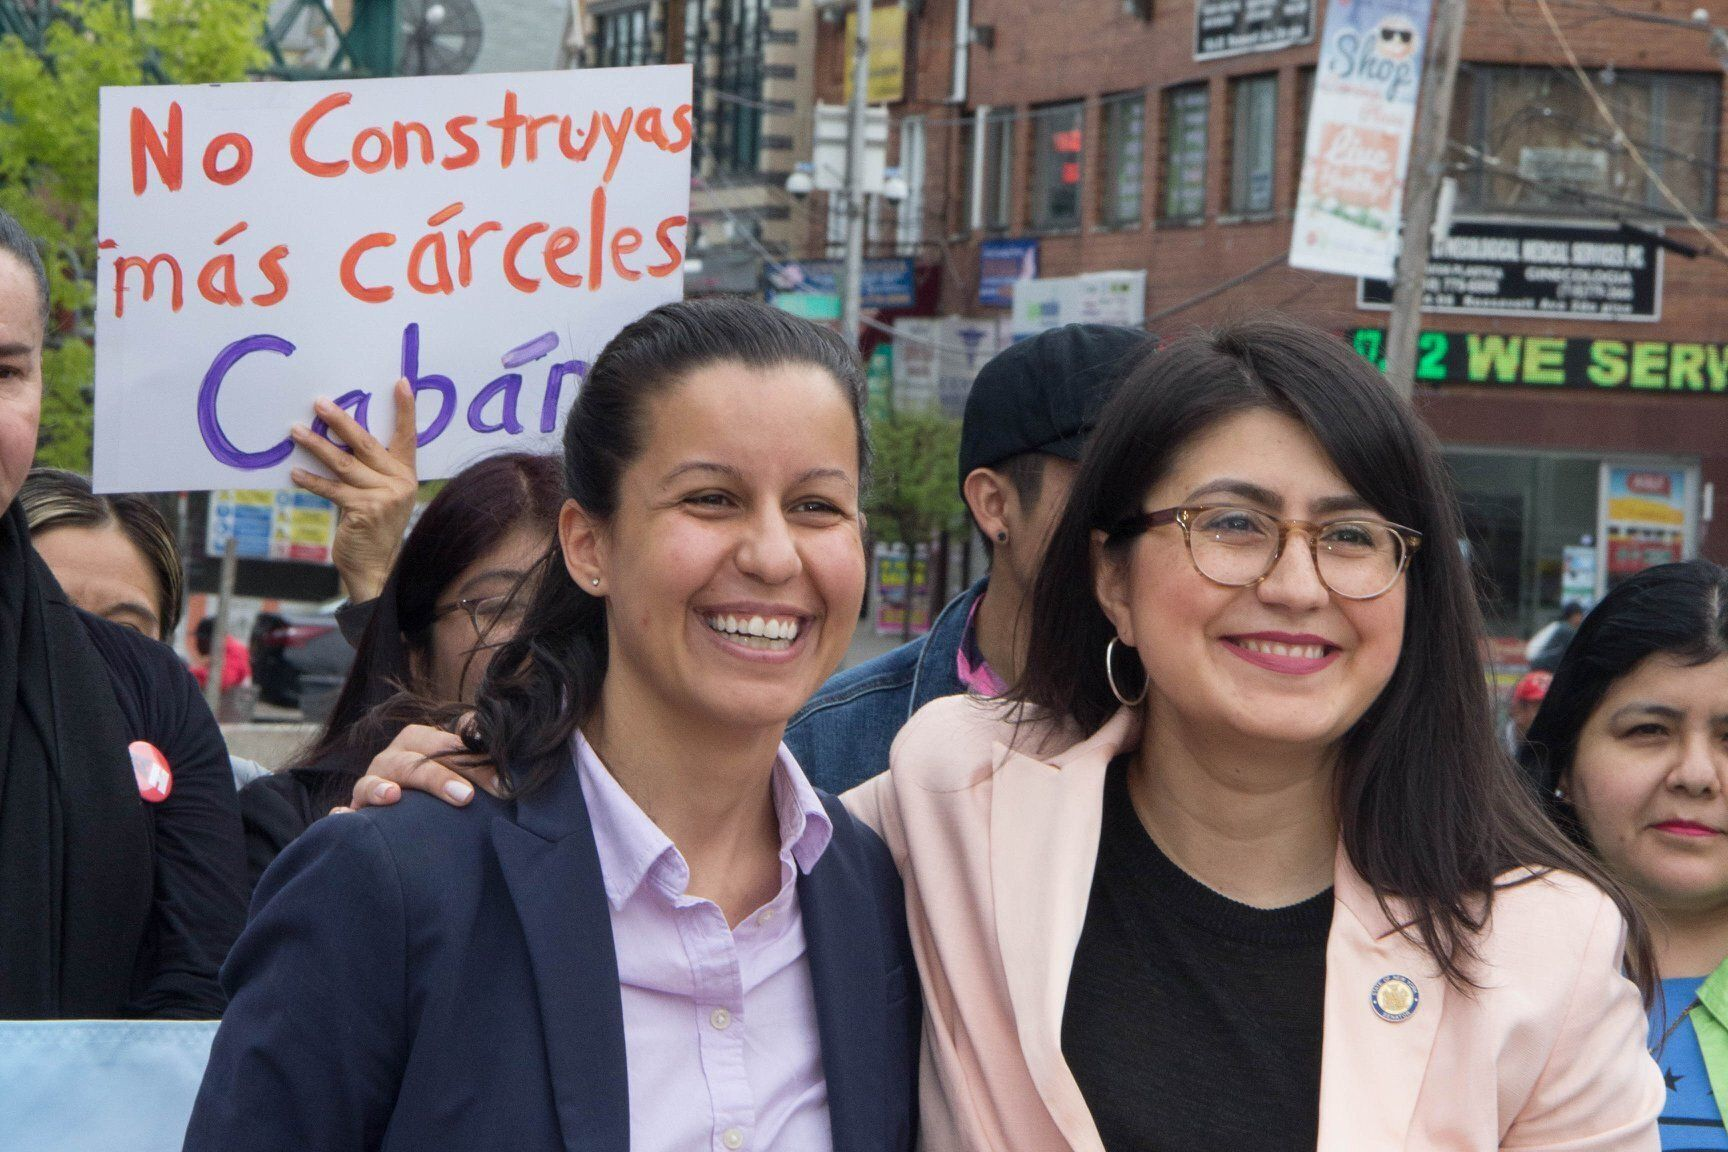 Tiffany Cabán, left, stands with New York state Sen. Jessica Ramos (D), who has endorsed her candidacy.